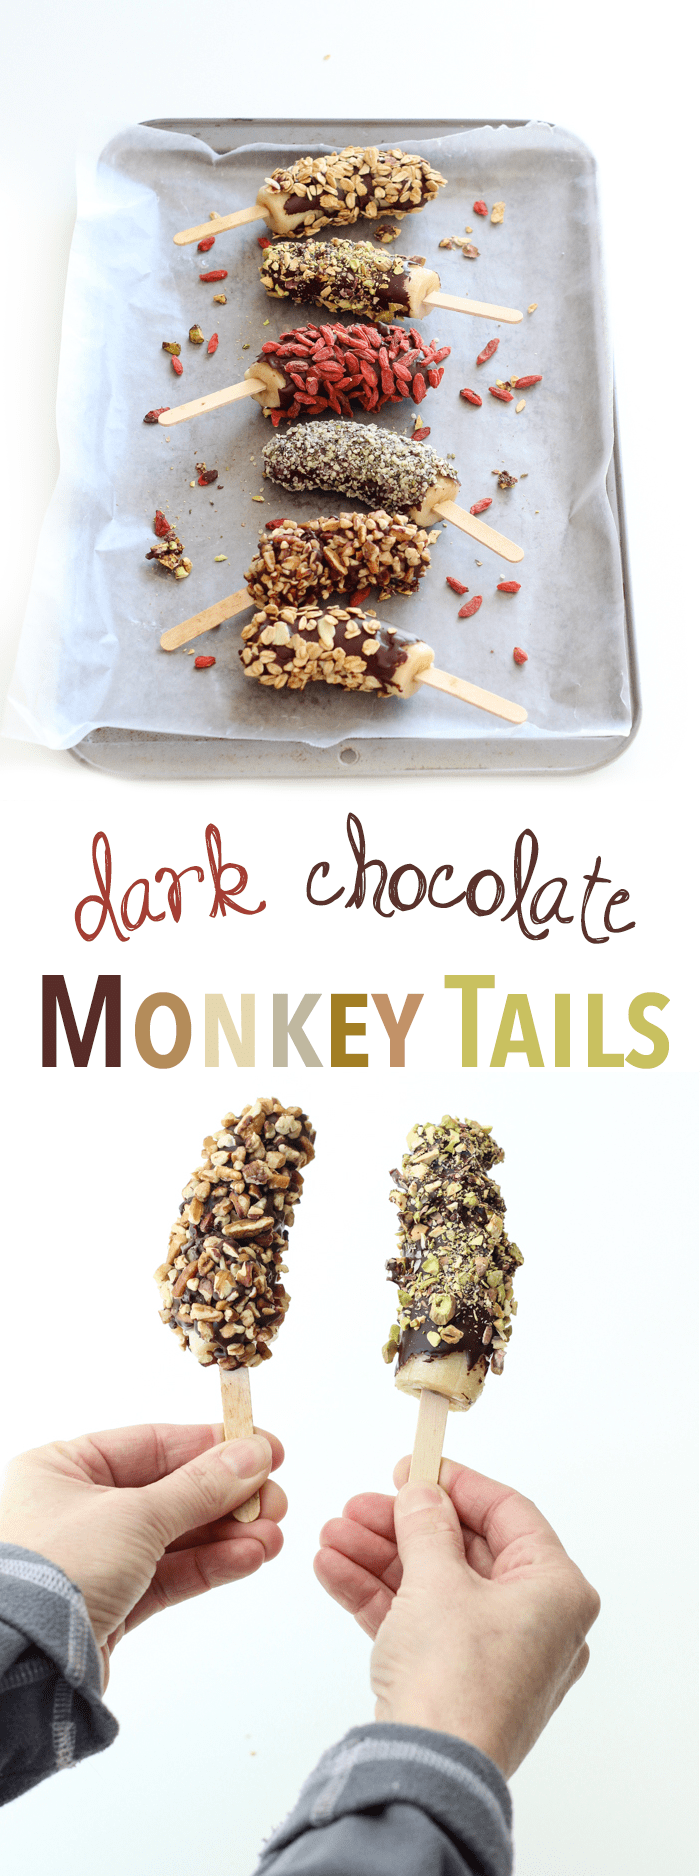 Super snack - Monkey Tails - frozen bananas dipped in dark chocolate and rolled in a ton of superfood toppings!